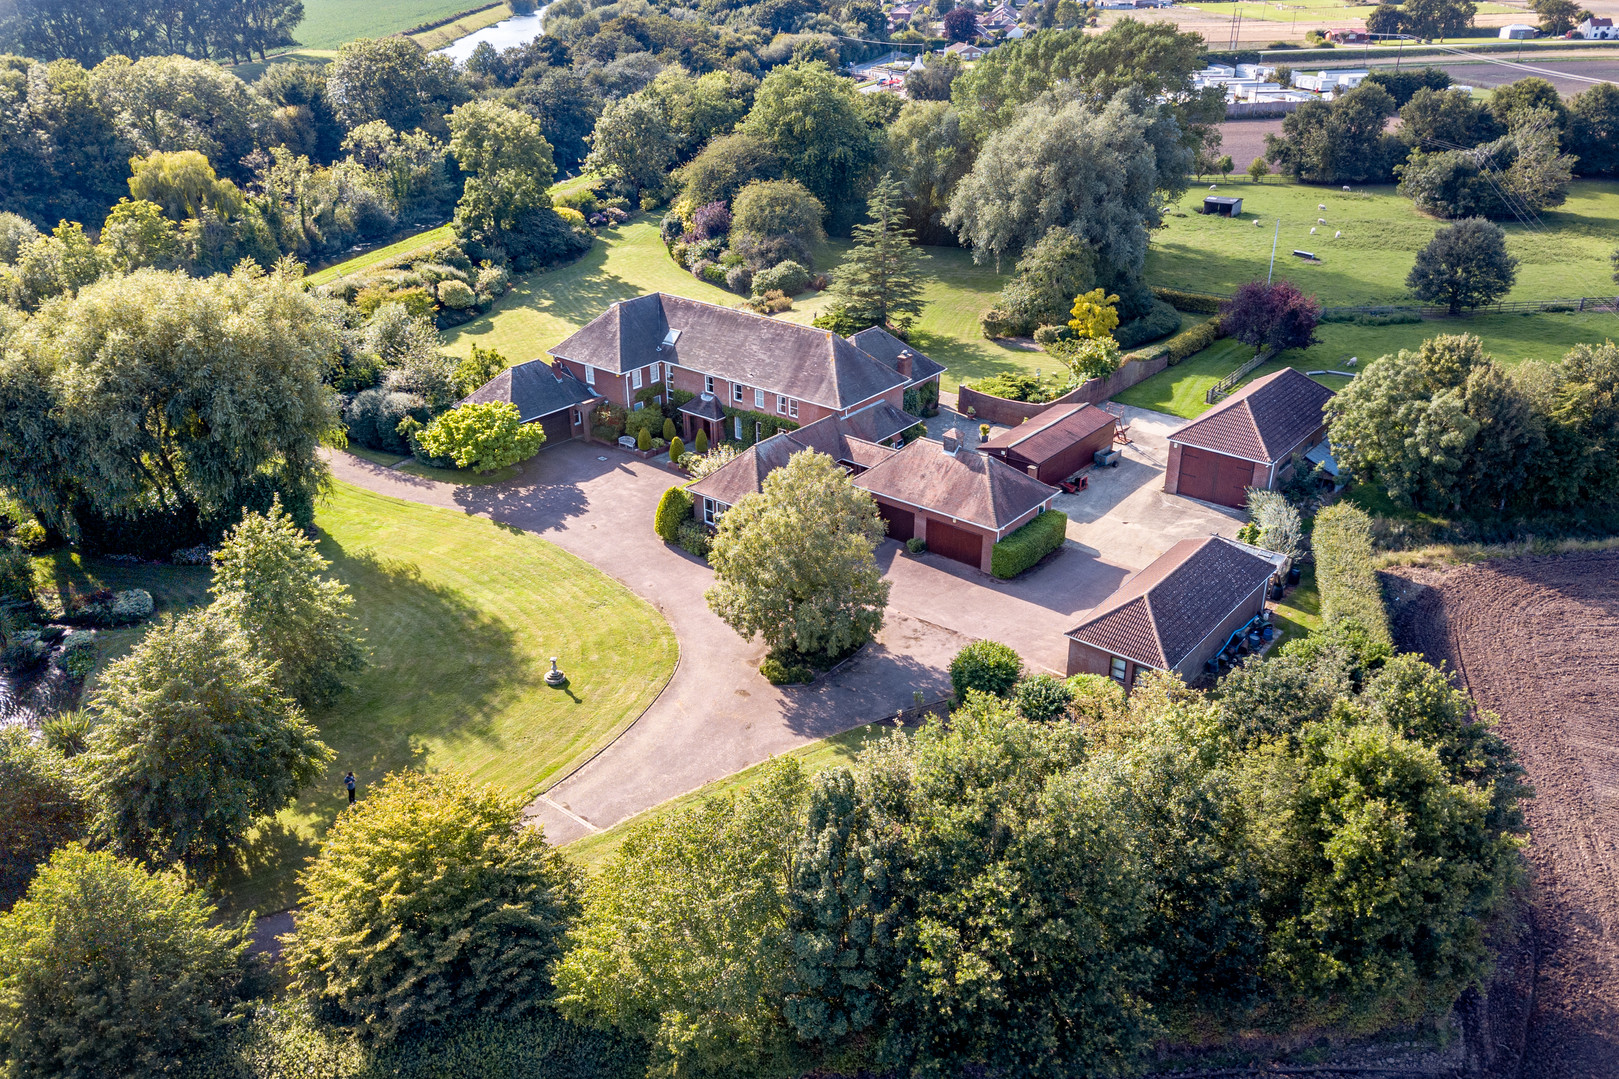 Holland House (Antons Gowt) Aerial-15.jp